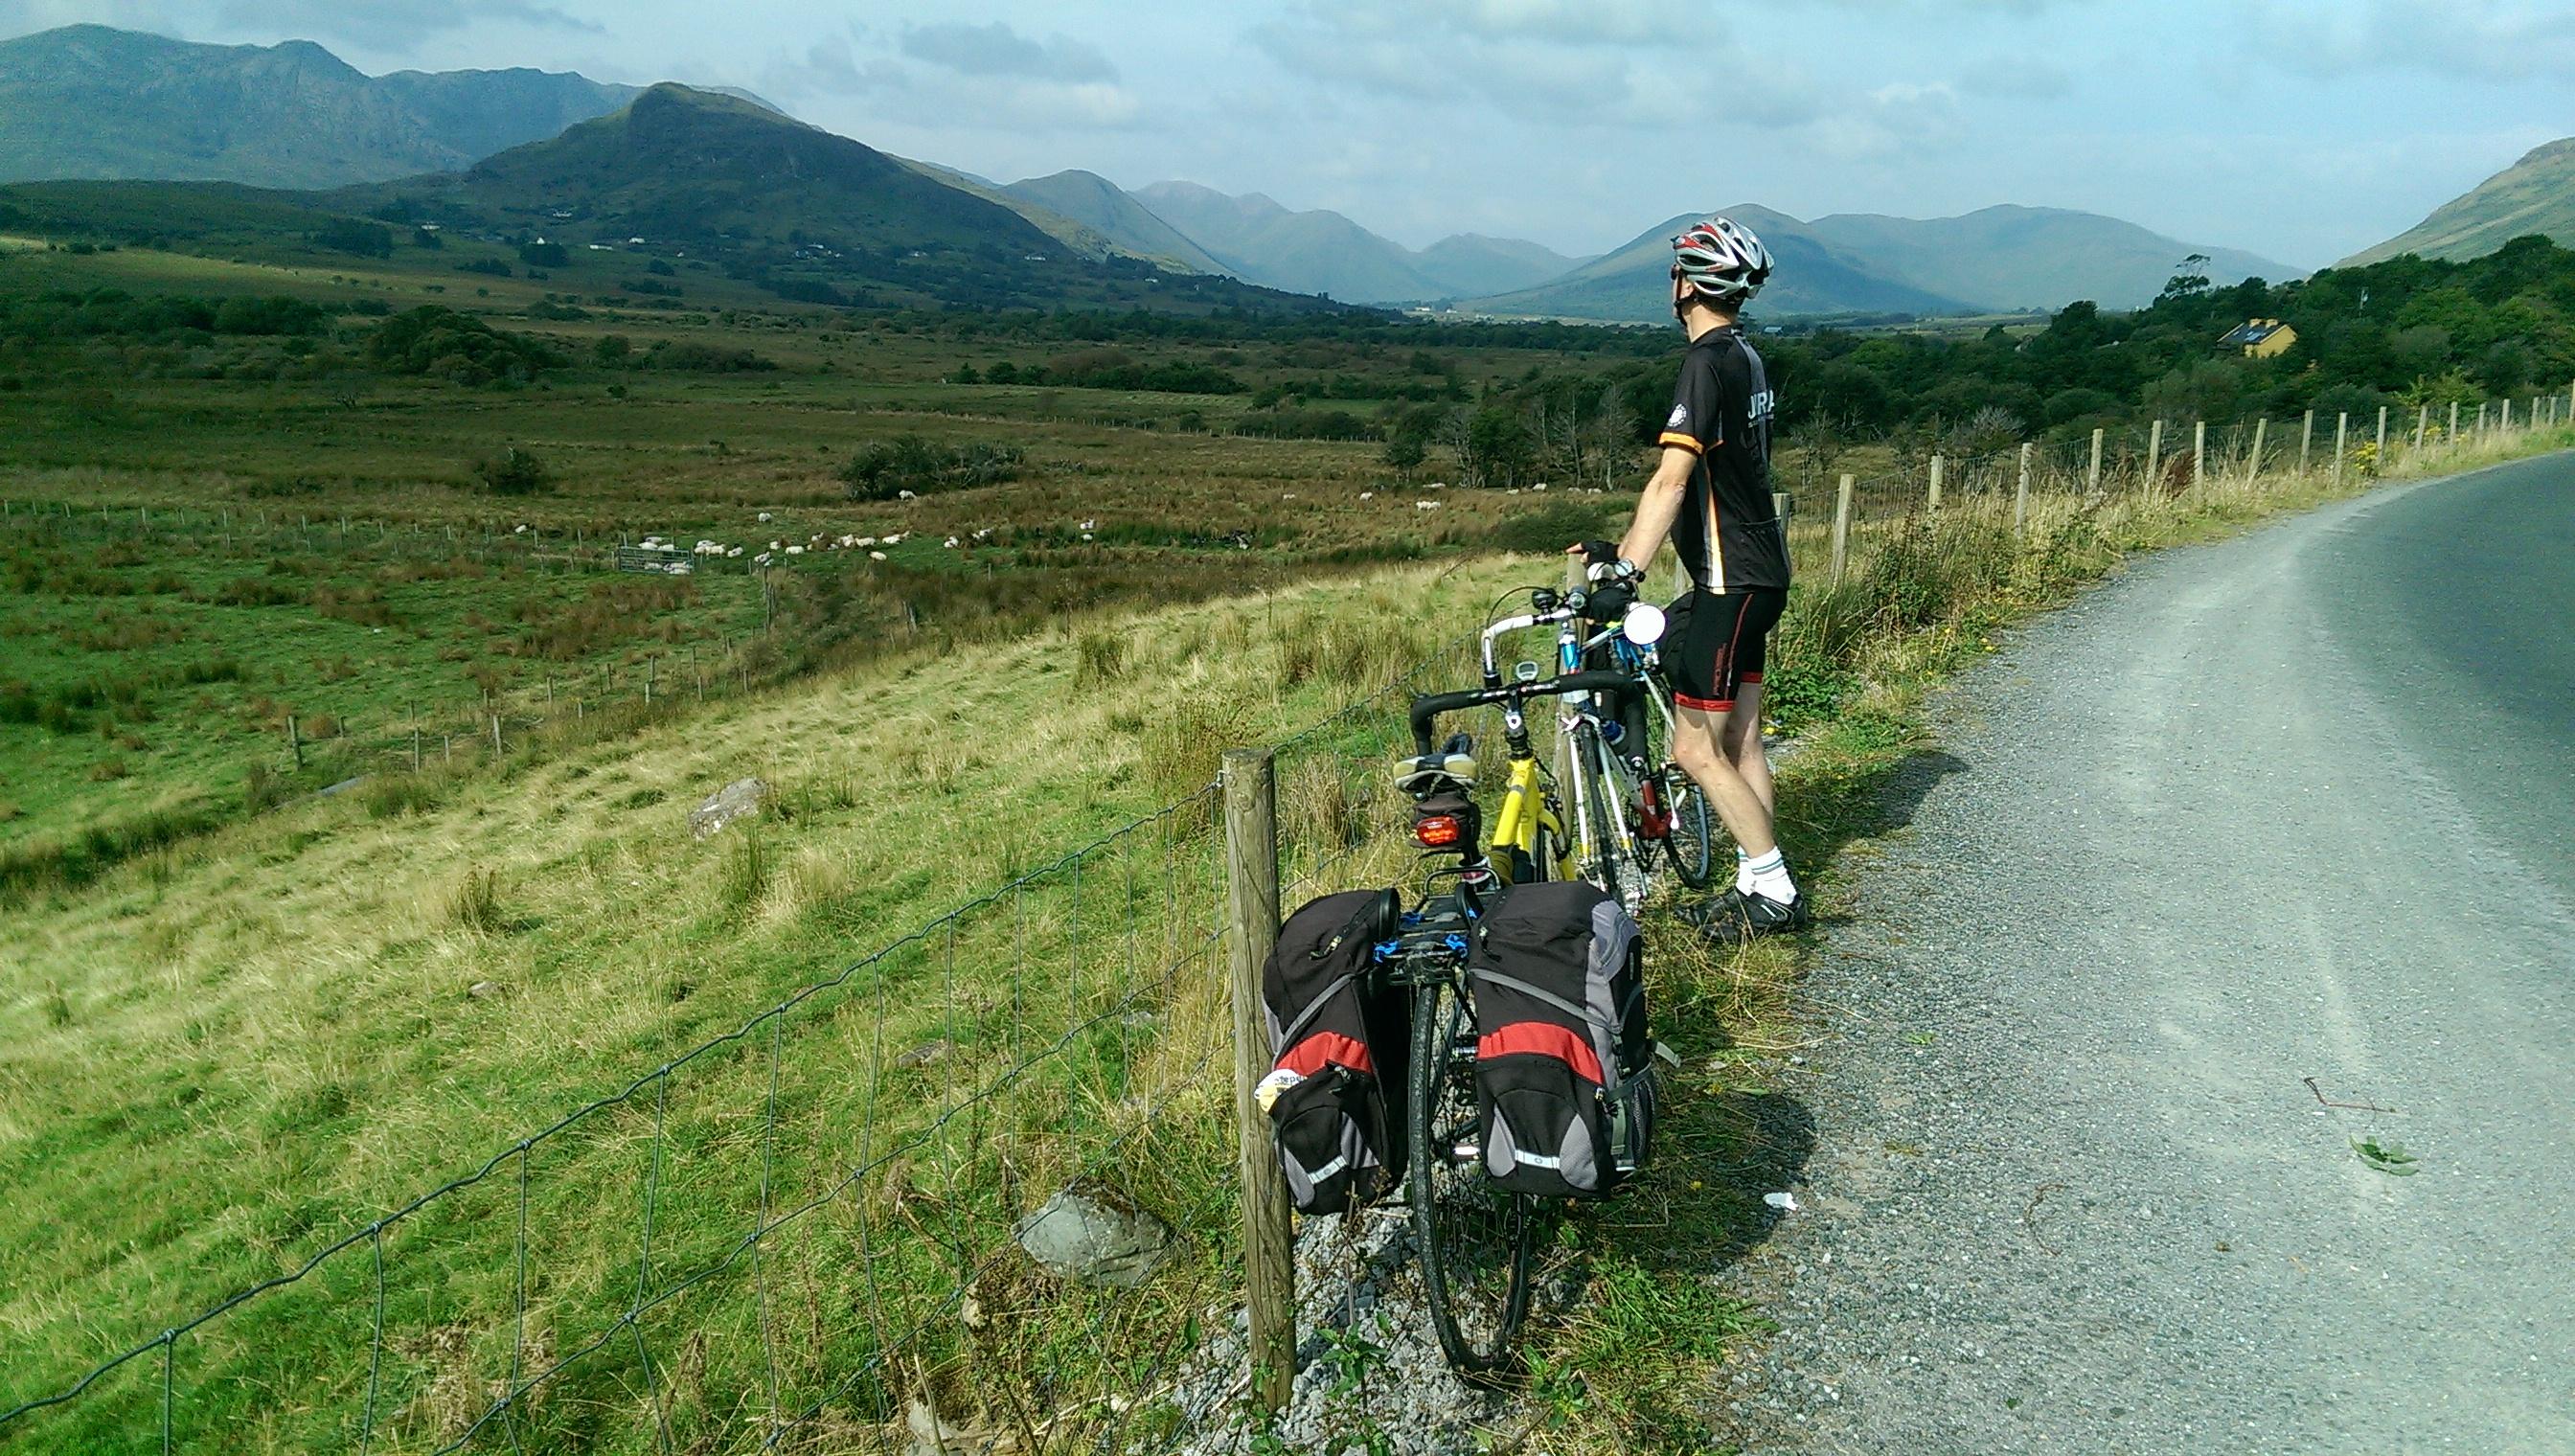 Time out to look at the Connemara mountains in County Galway